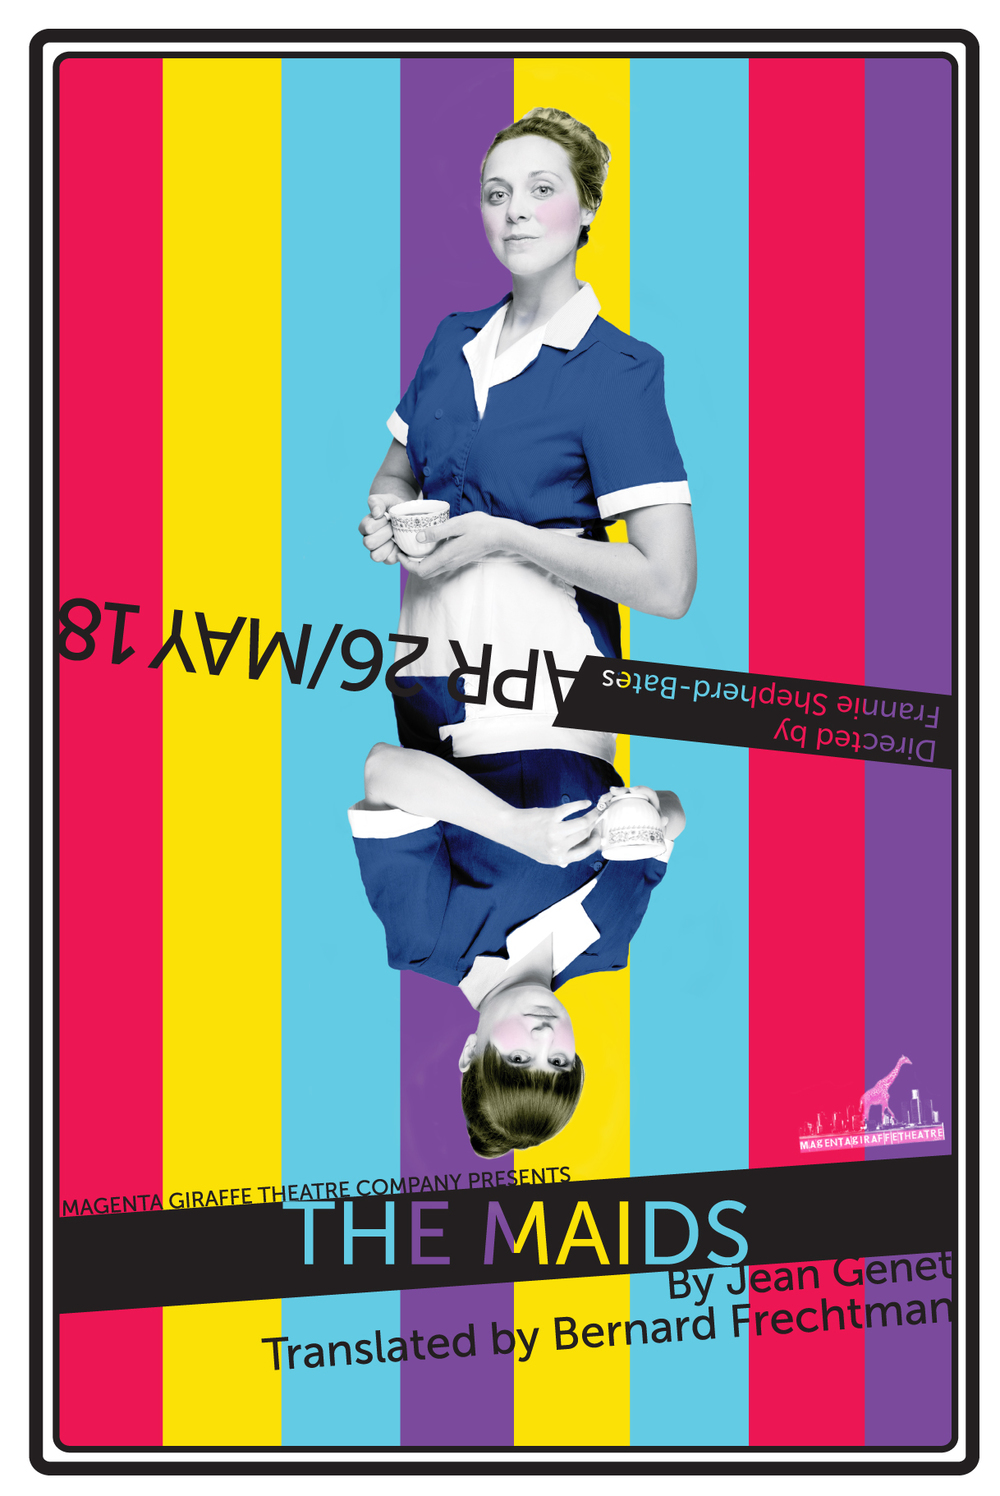 The Maids Program